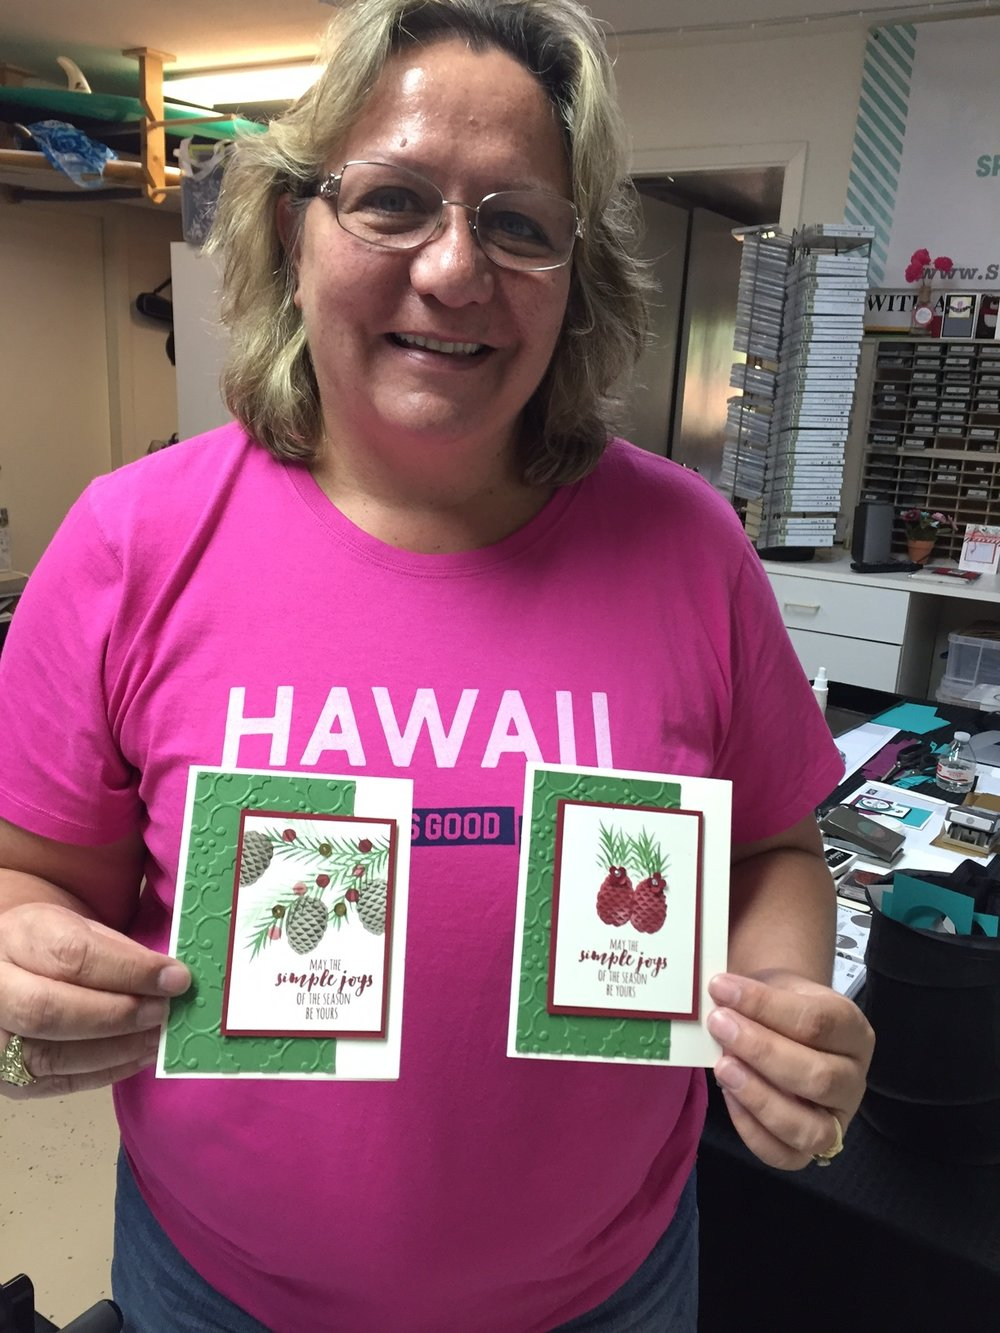 Shelly at Stamp A Stack - www.stampedwithaloha.com